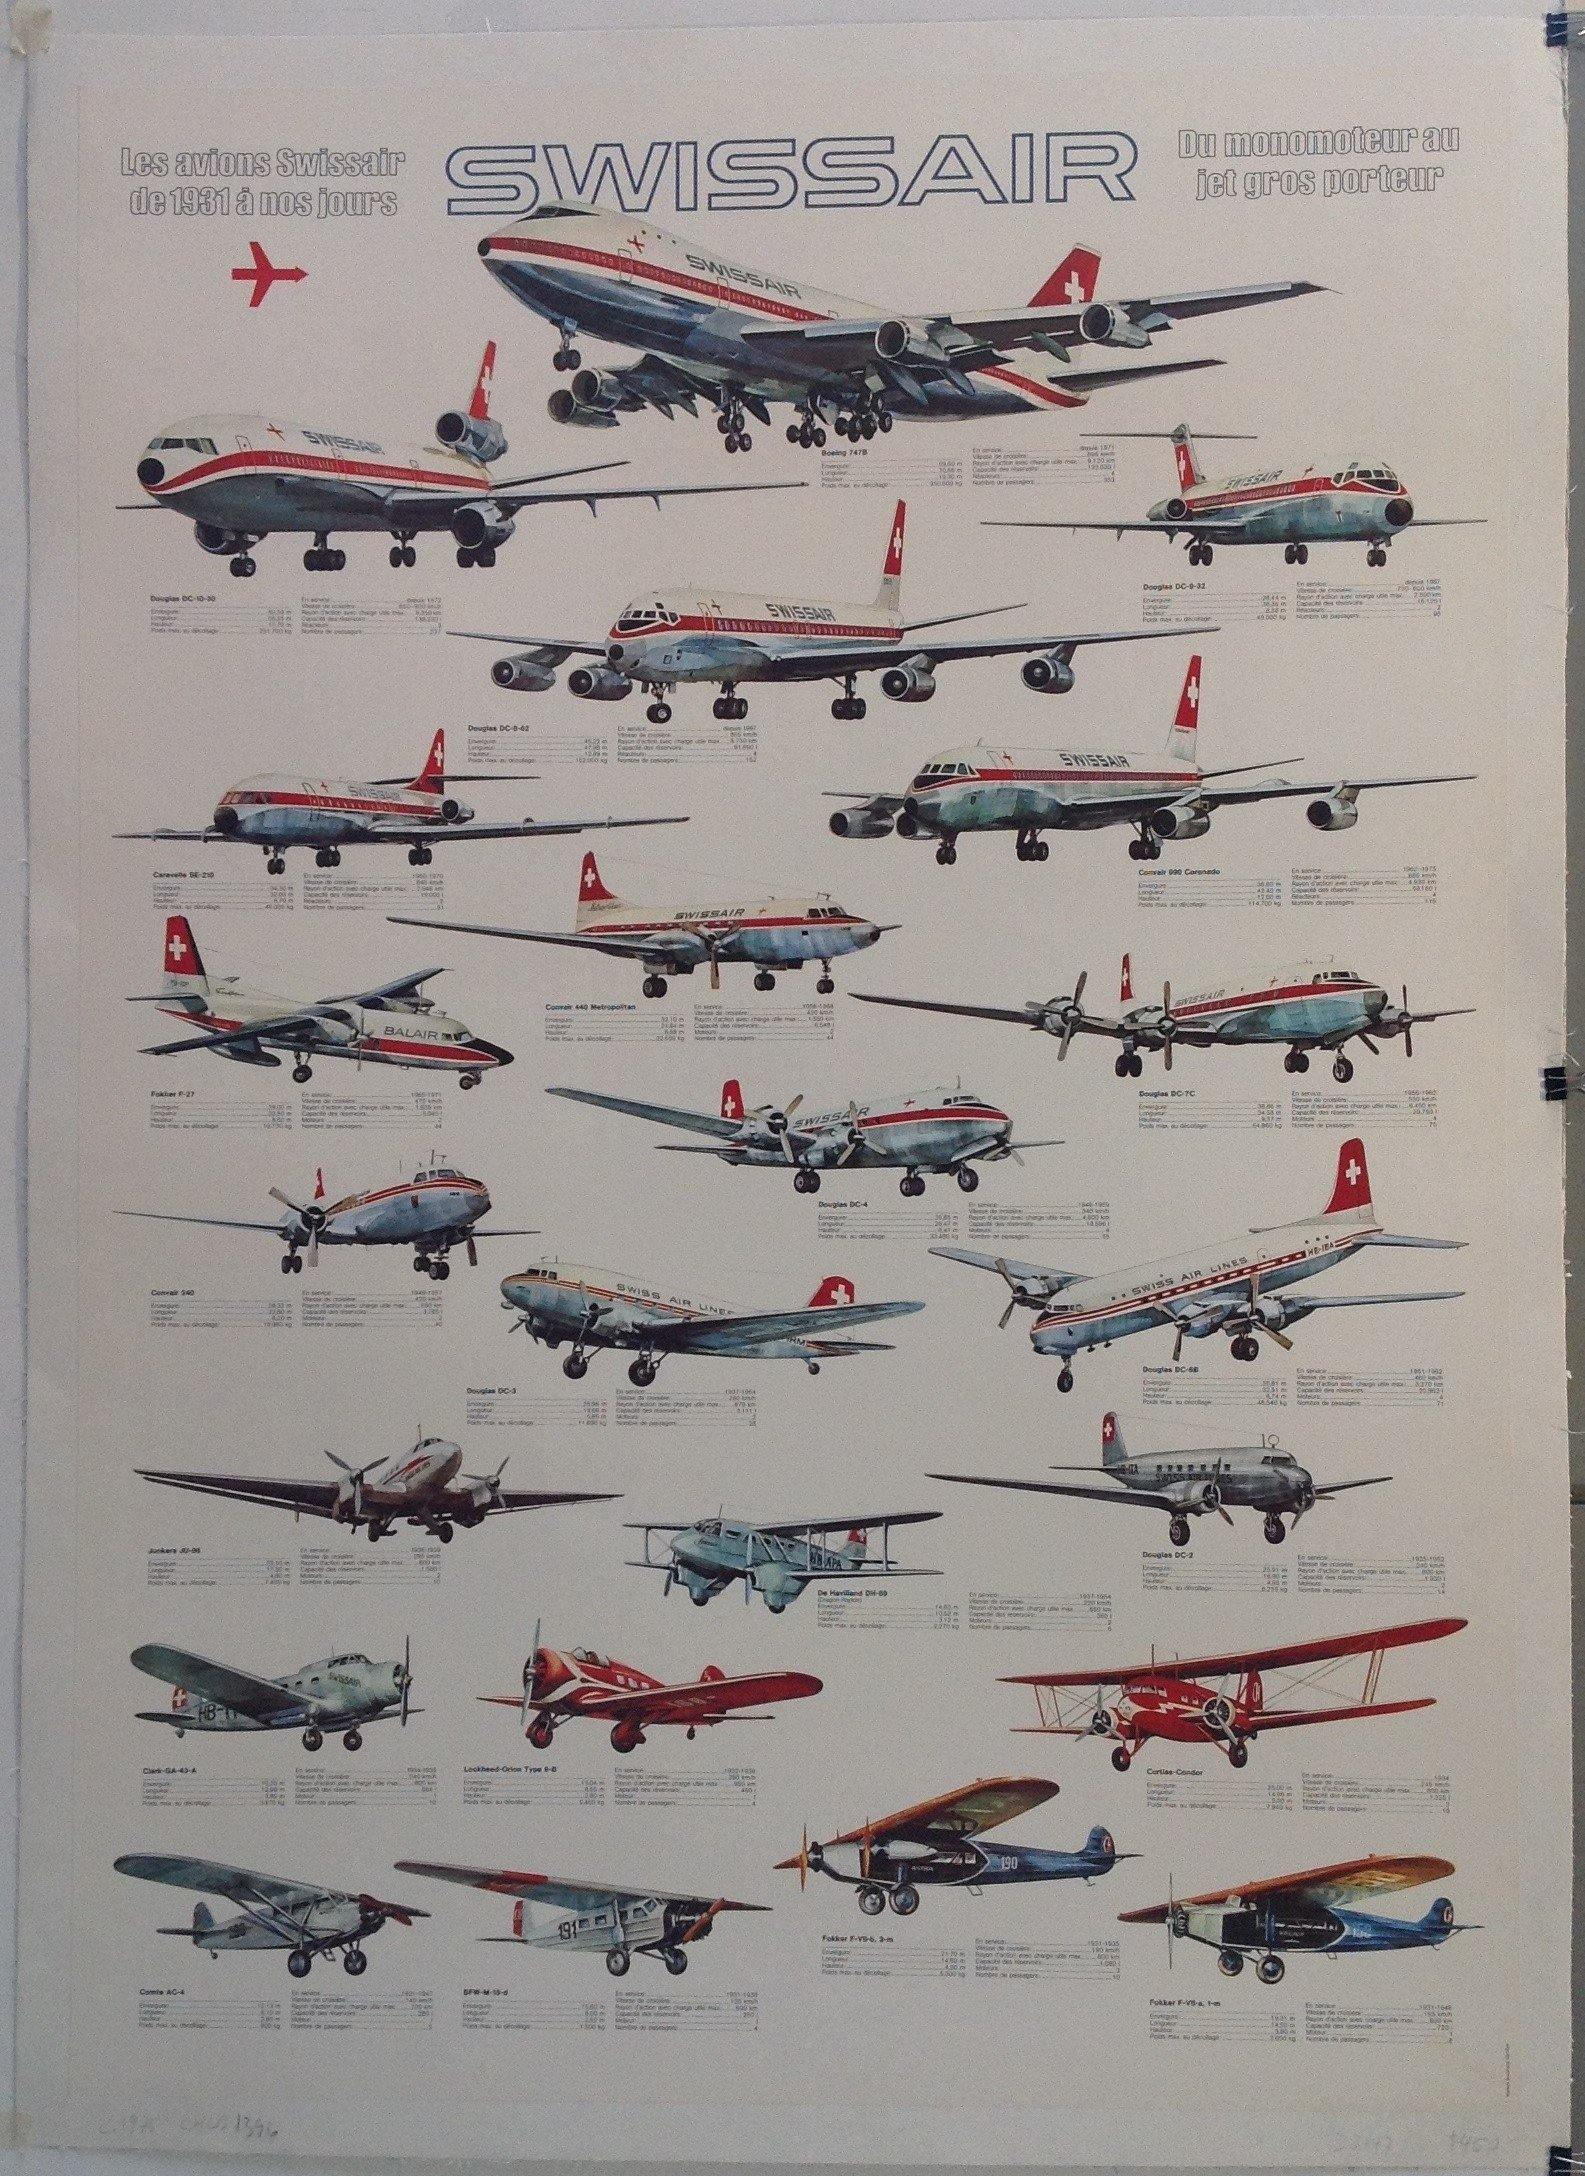 Swiss Air Plane Models